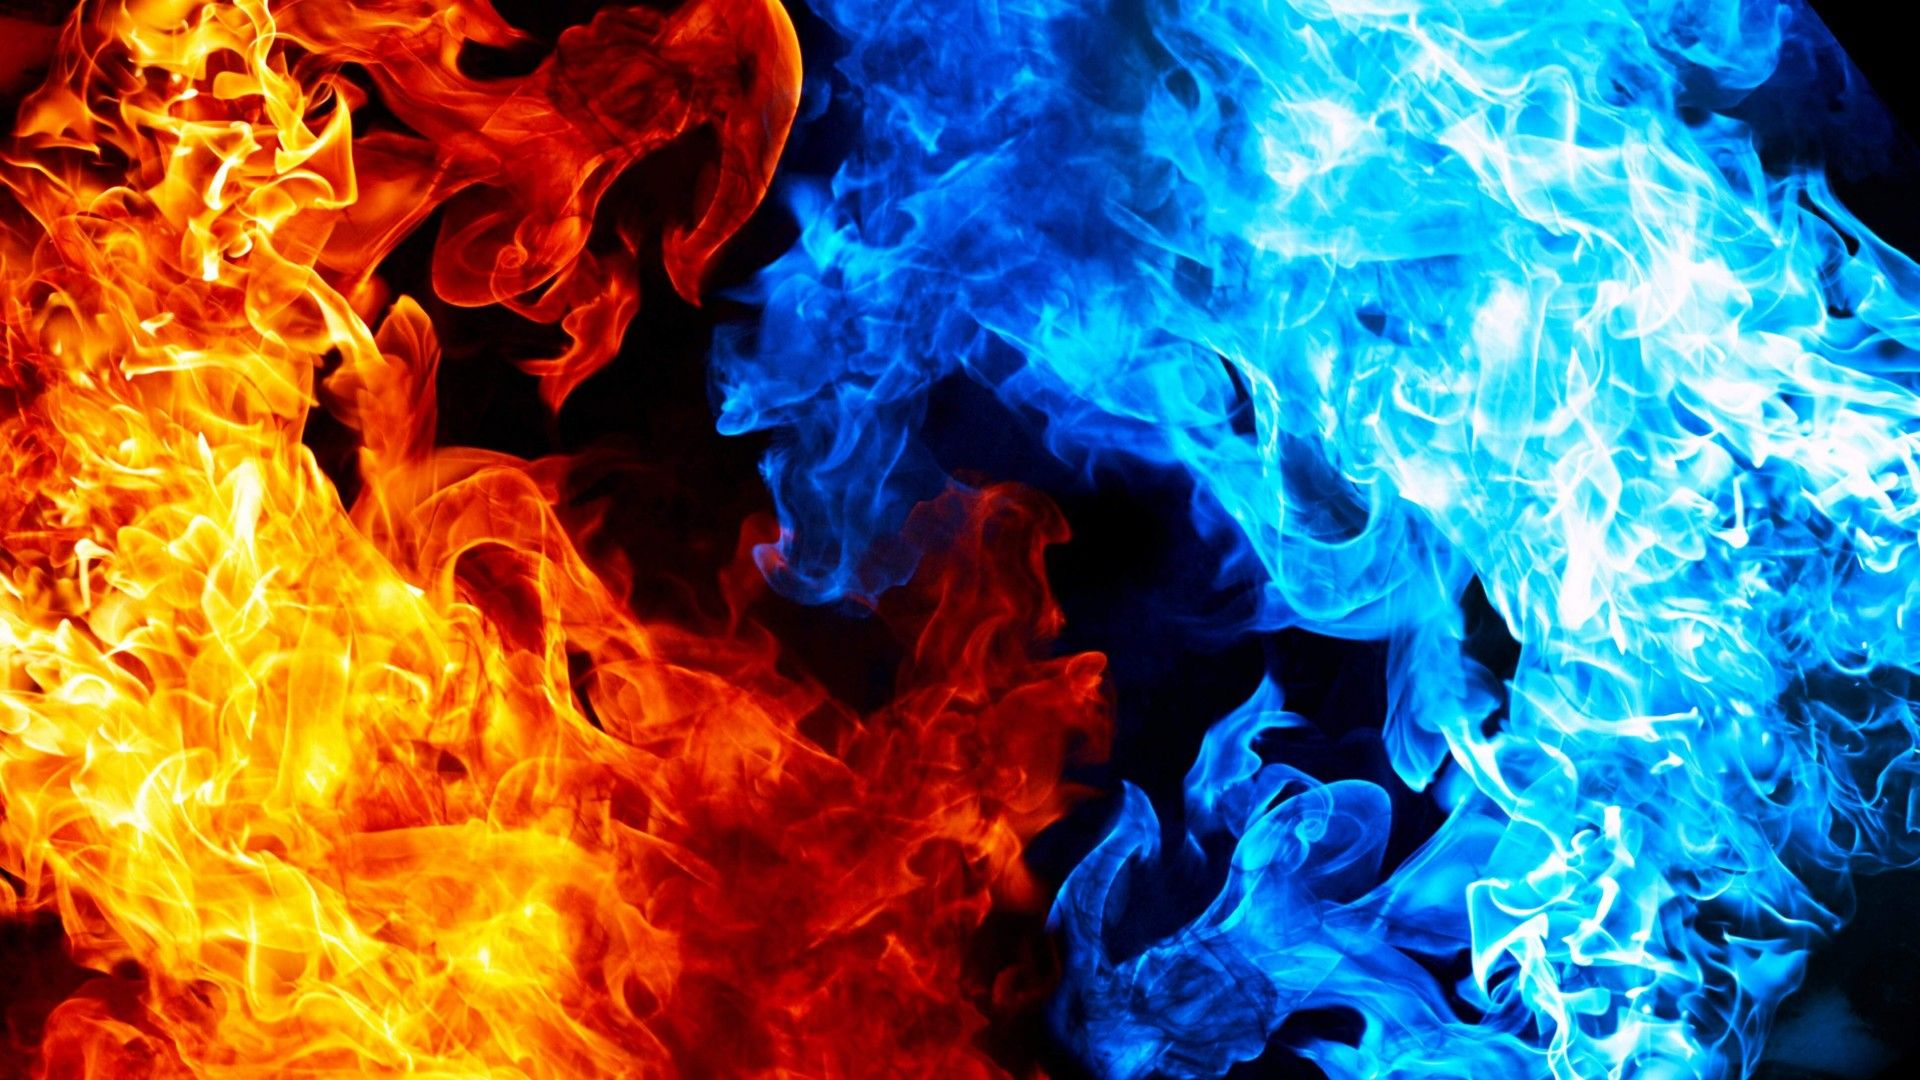 Blue Red Fire Black background wallpaper, Skull